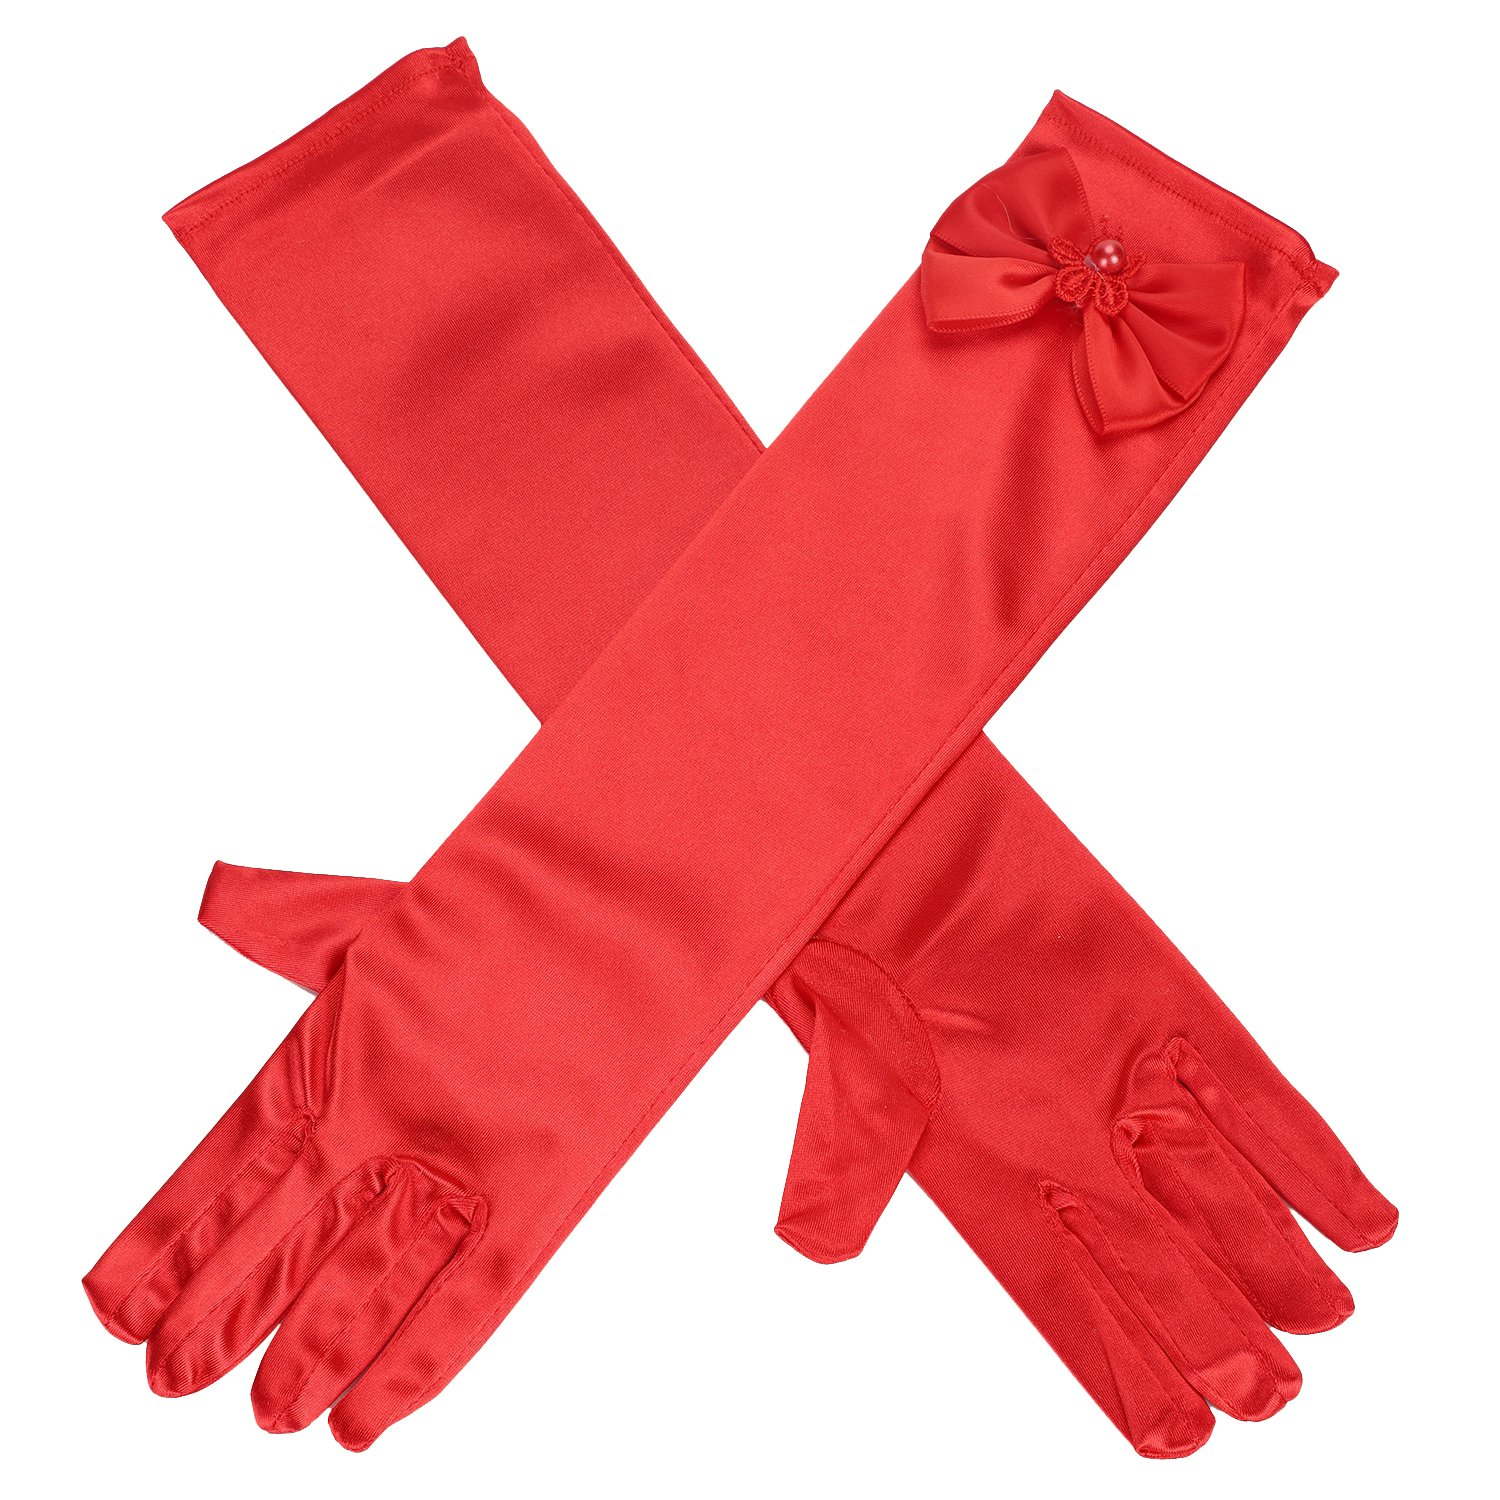 Kids Girls Multi-use Gloves Long Satin Princess Dress-up Diamonds Bows Gloves for Performance Party Photography Ball IBLUELOVER